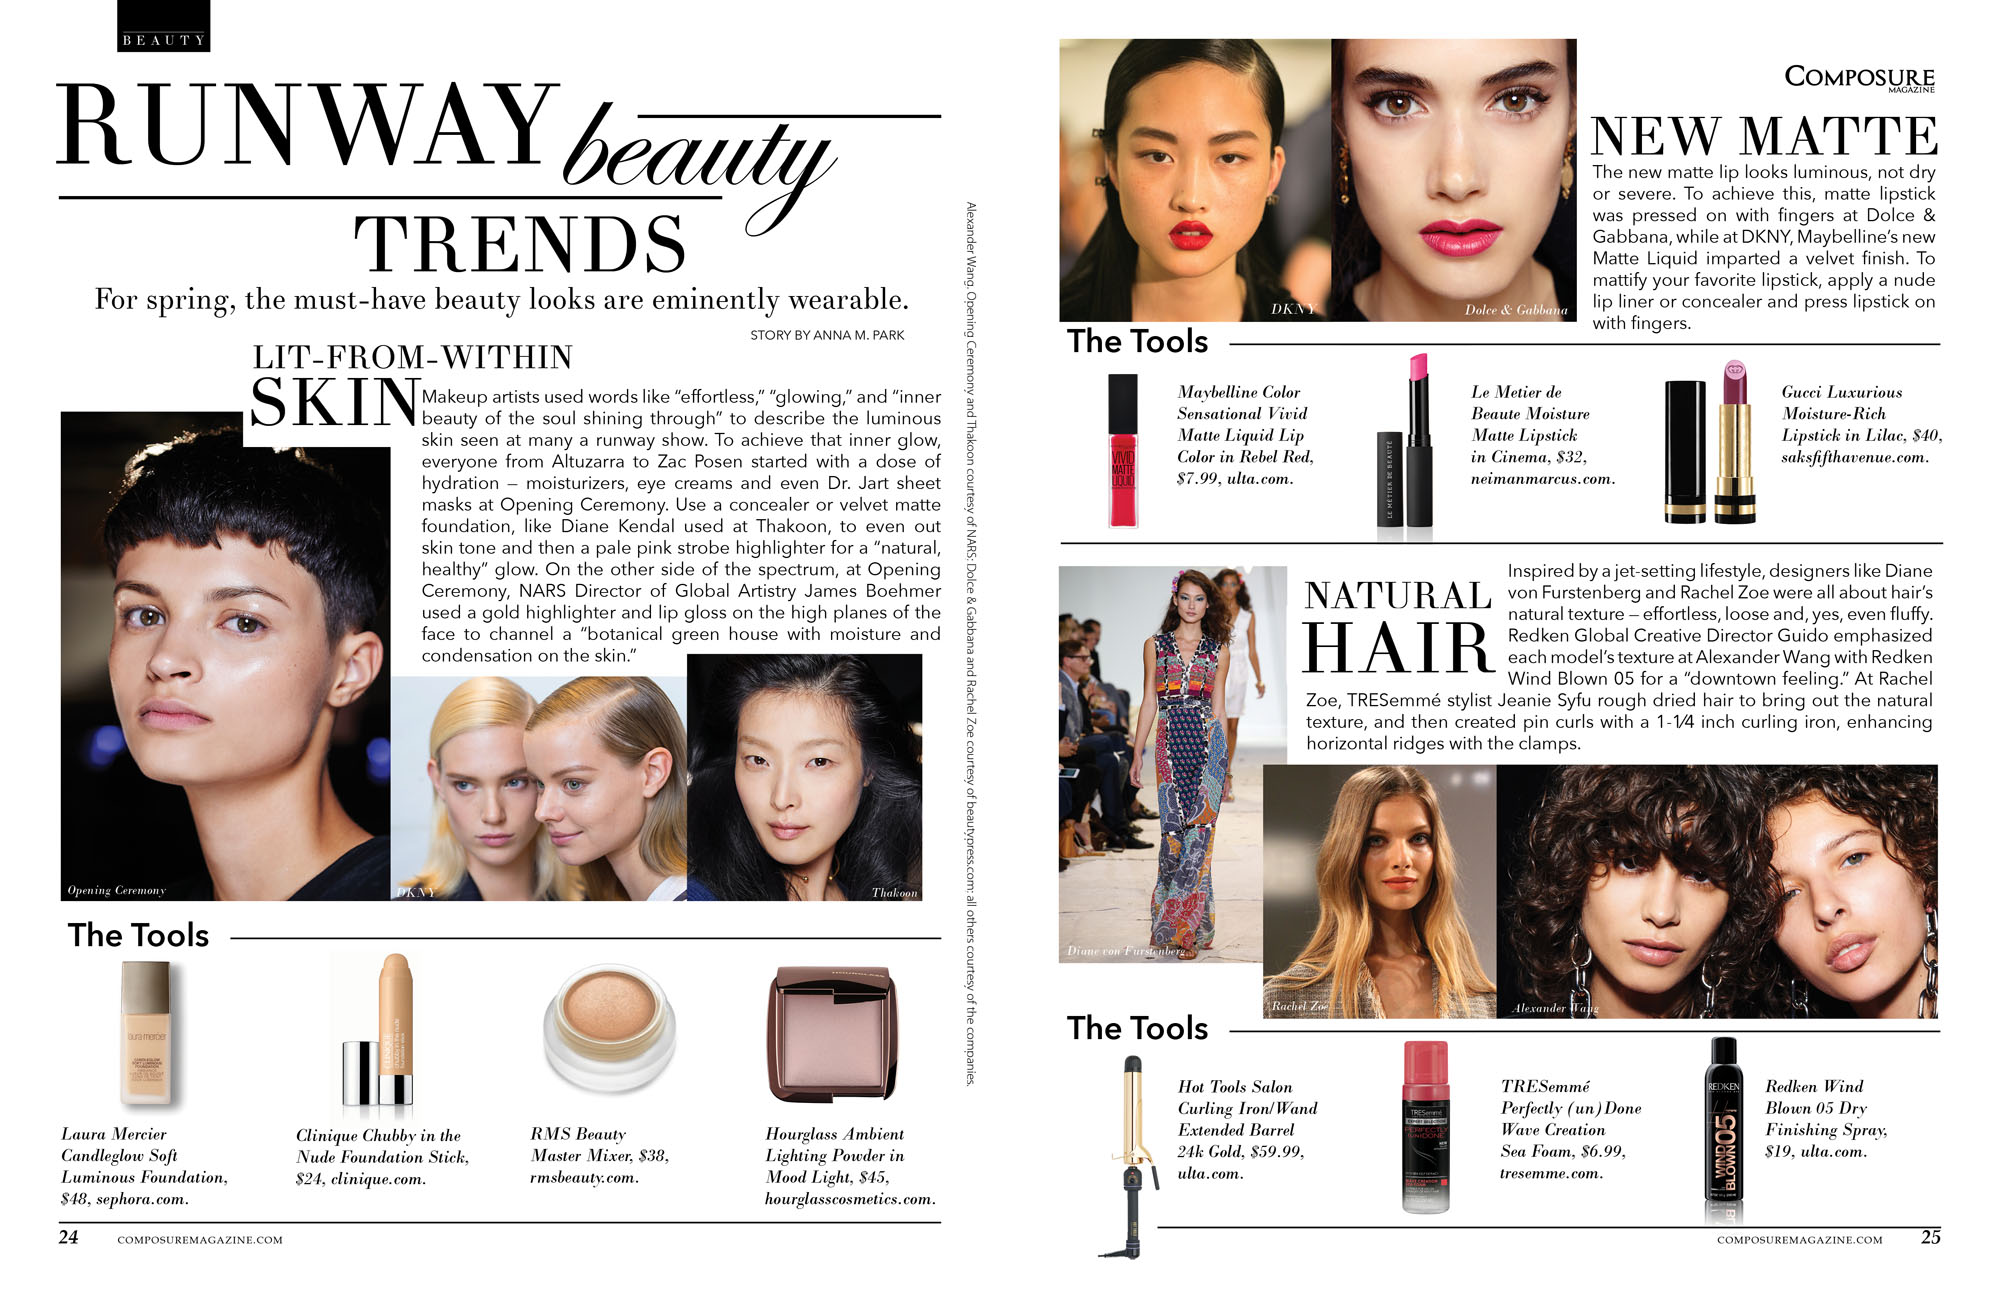 Beauty: Halo Hair Extensions – Composure Magazine